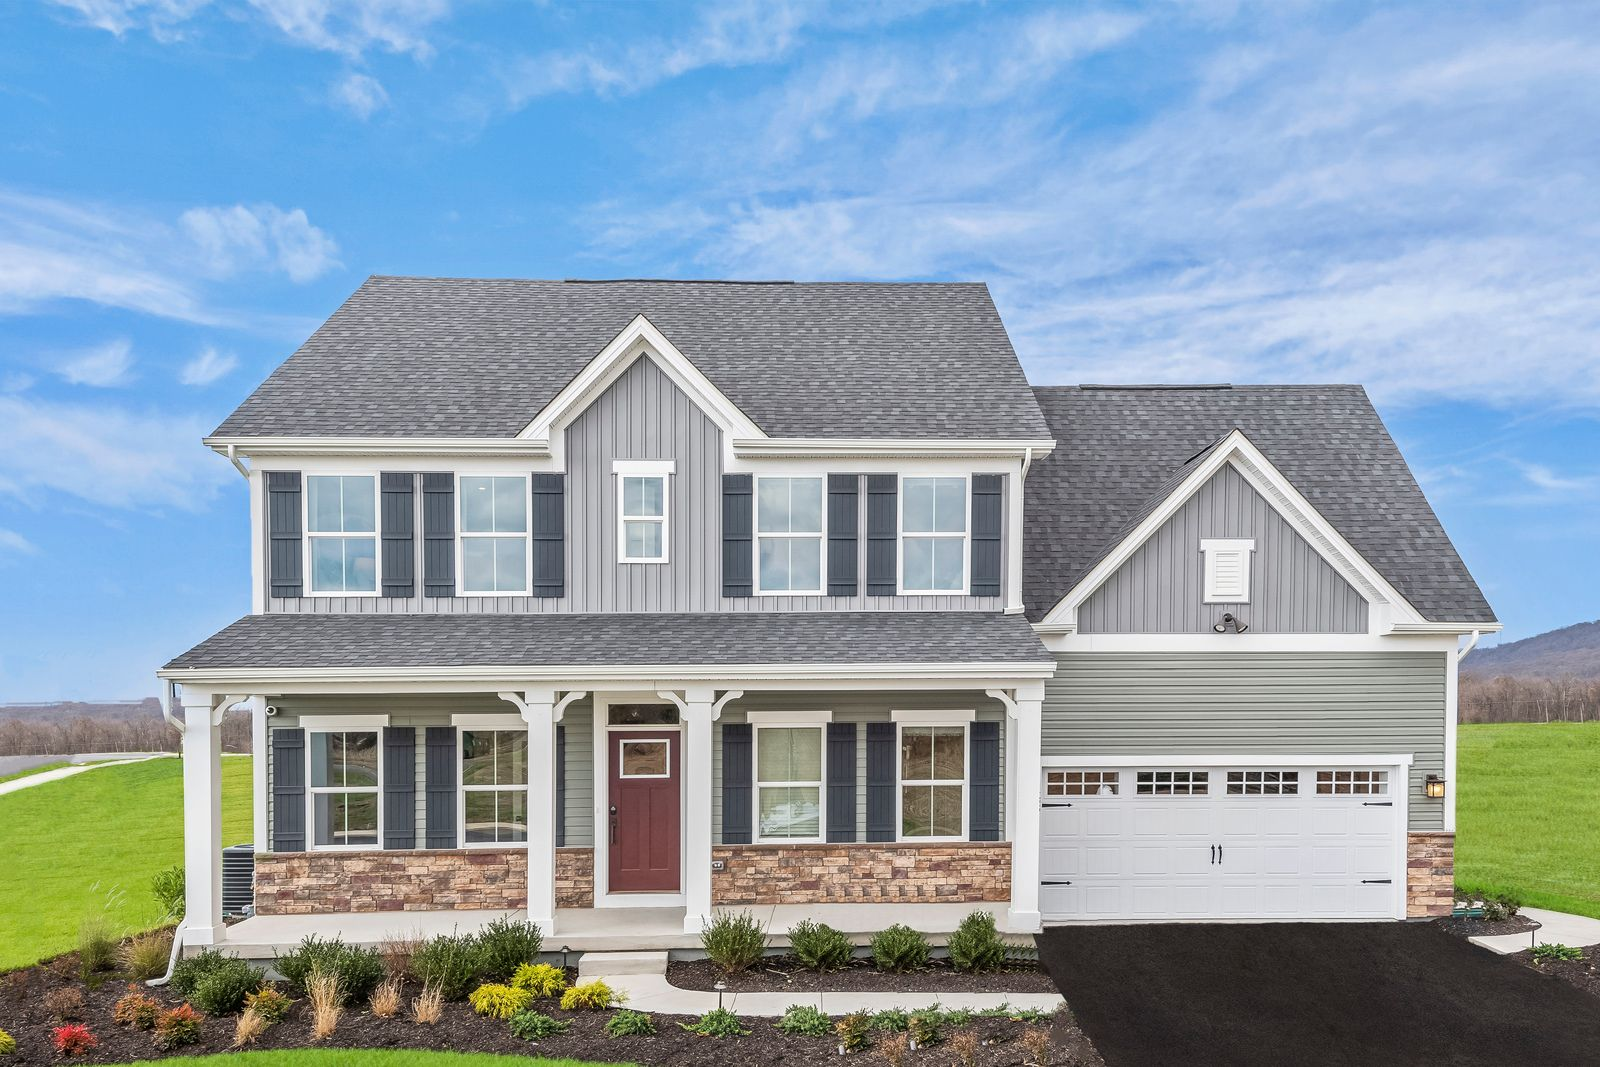 Welcome to Blue Ridge Single Family Homes!:Join the VIP List and be notified when new homesites are released in this sought-after community.Click here to join the VIP list today!